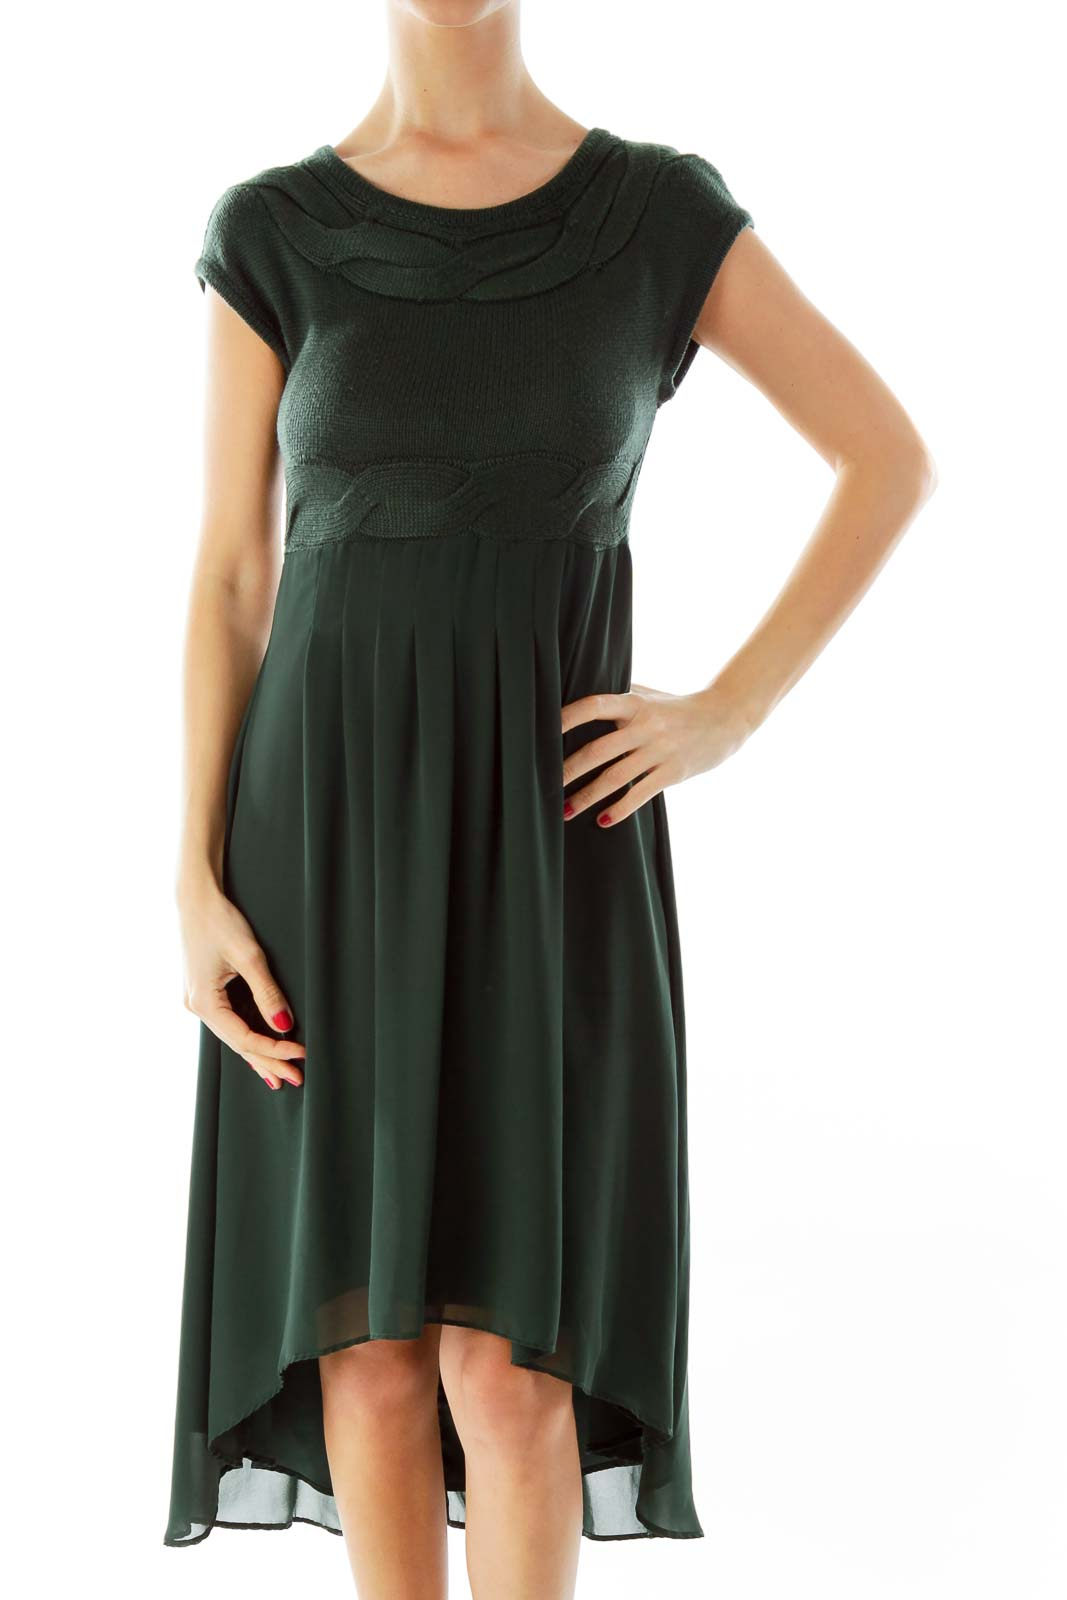 Green Knit Detail Dress